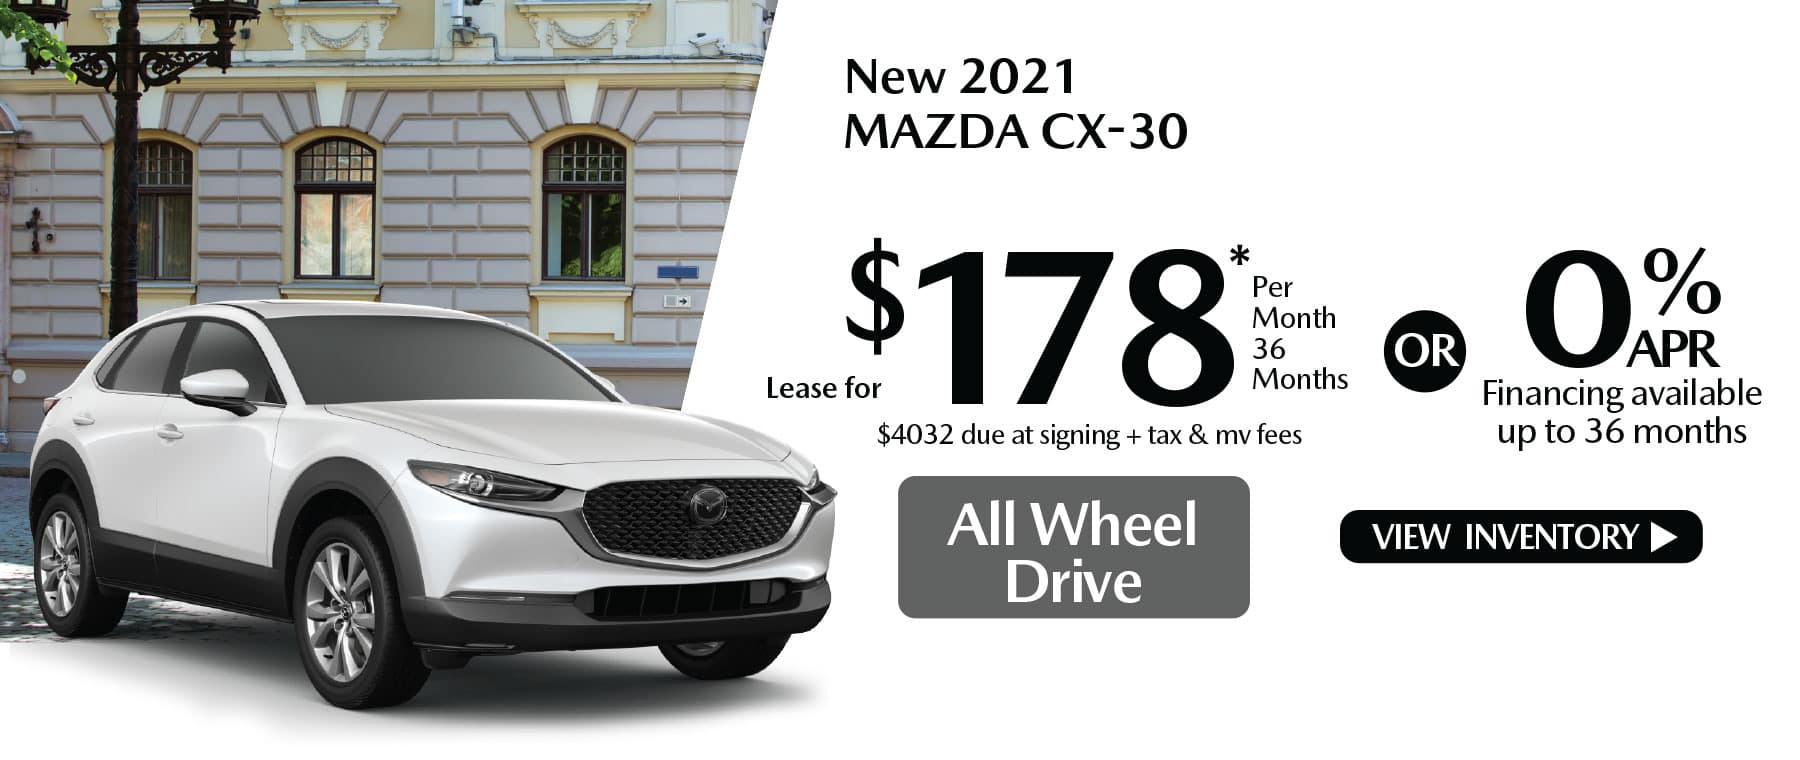 hi CX-30 New Lease Special Offer Mazda of New Rochelle NY